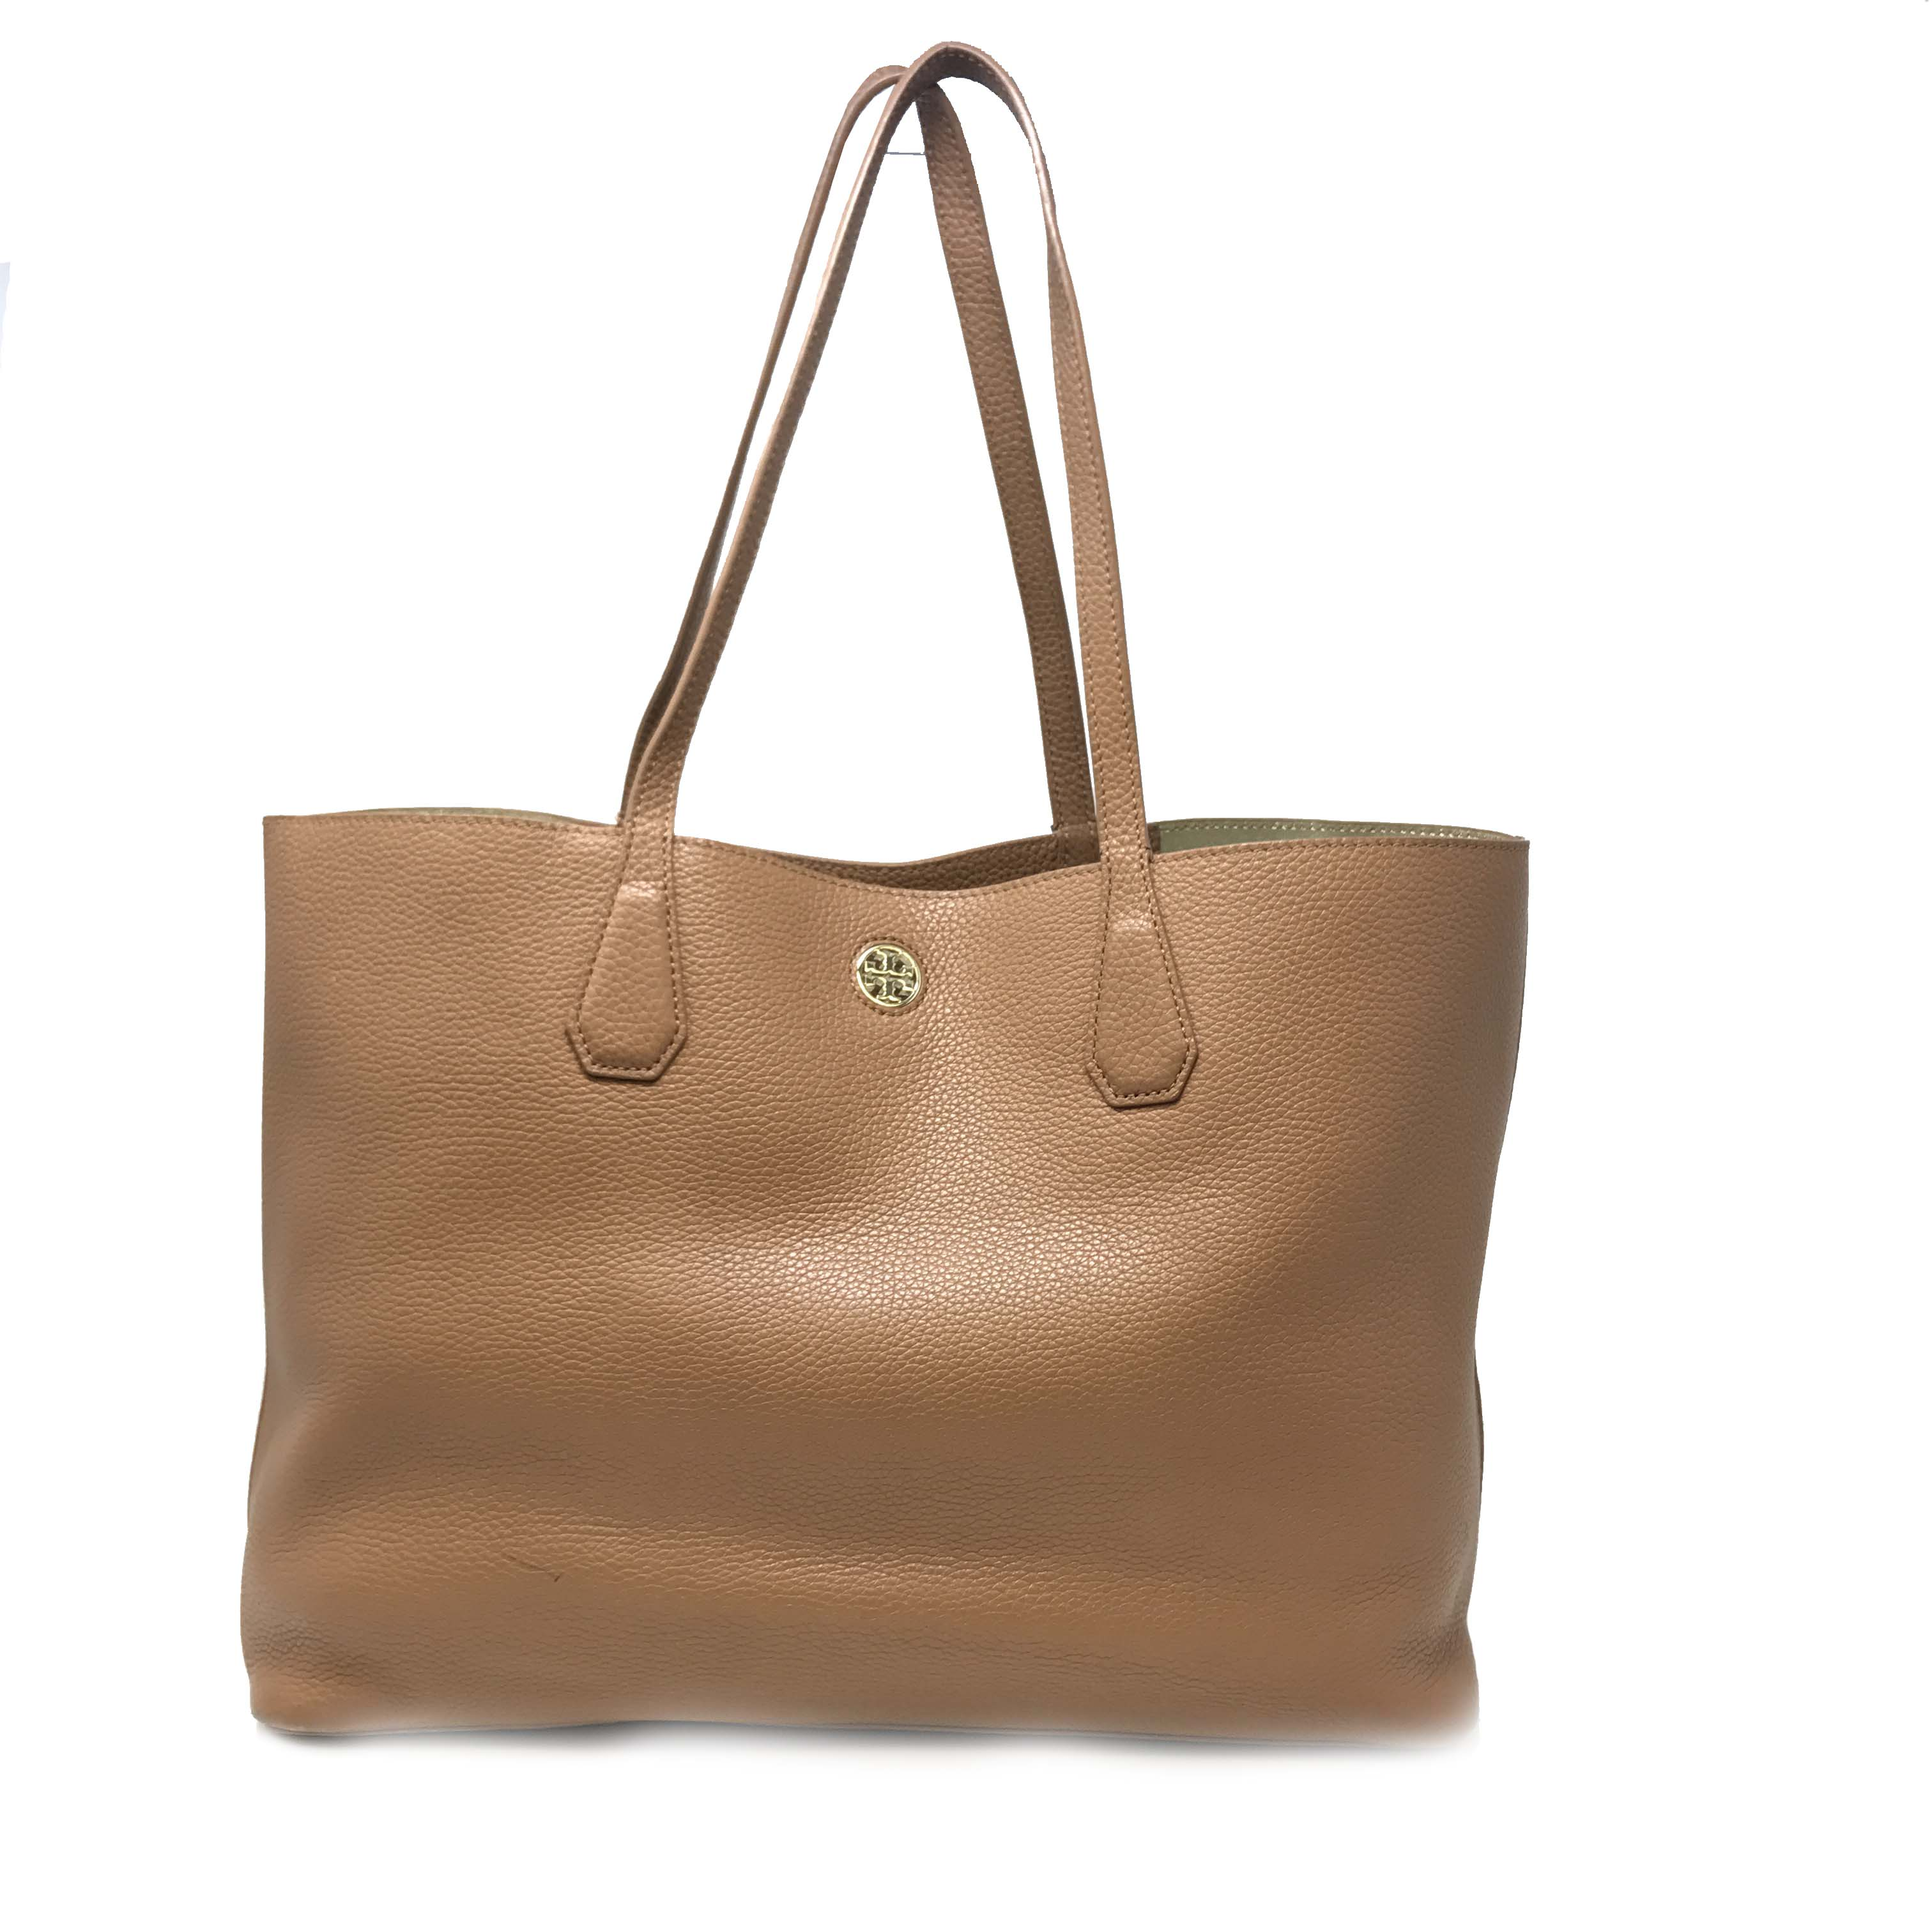 Details about Tory Burch Bark Light Gold Pebbled Leather Perry Tote Women s  Bag c5e08887f1